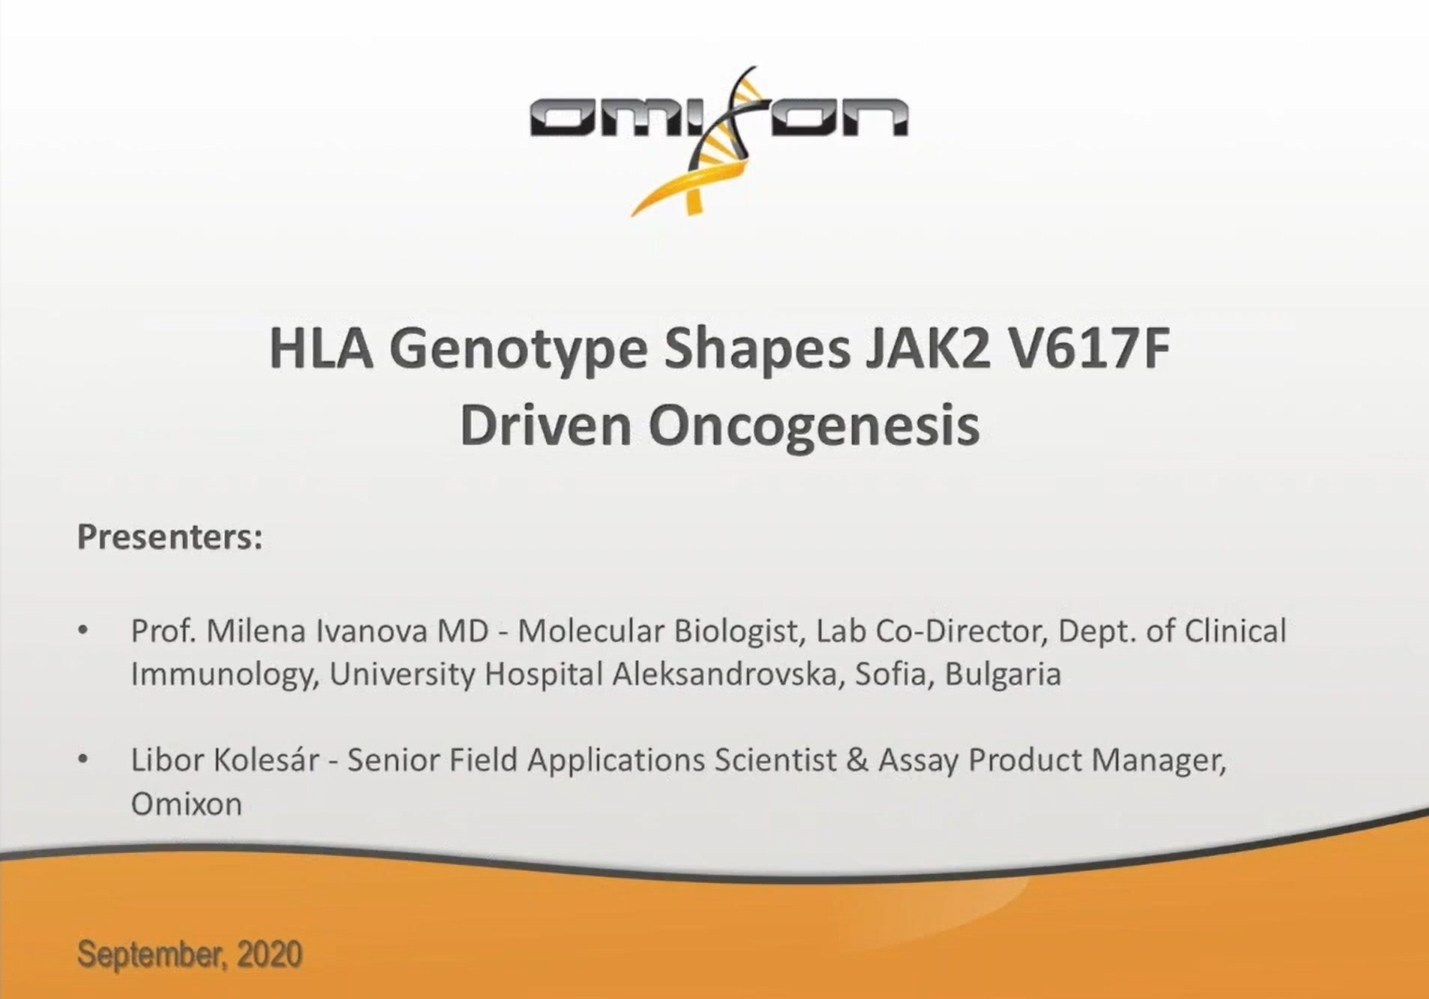 HLA Genotype Shapes JAK2 V617F Driven Oncogenesis